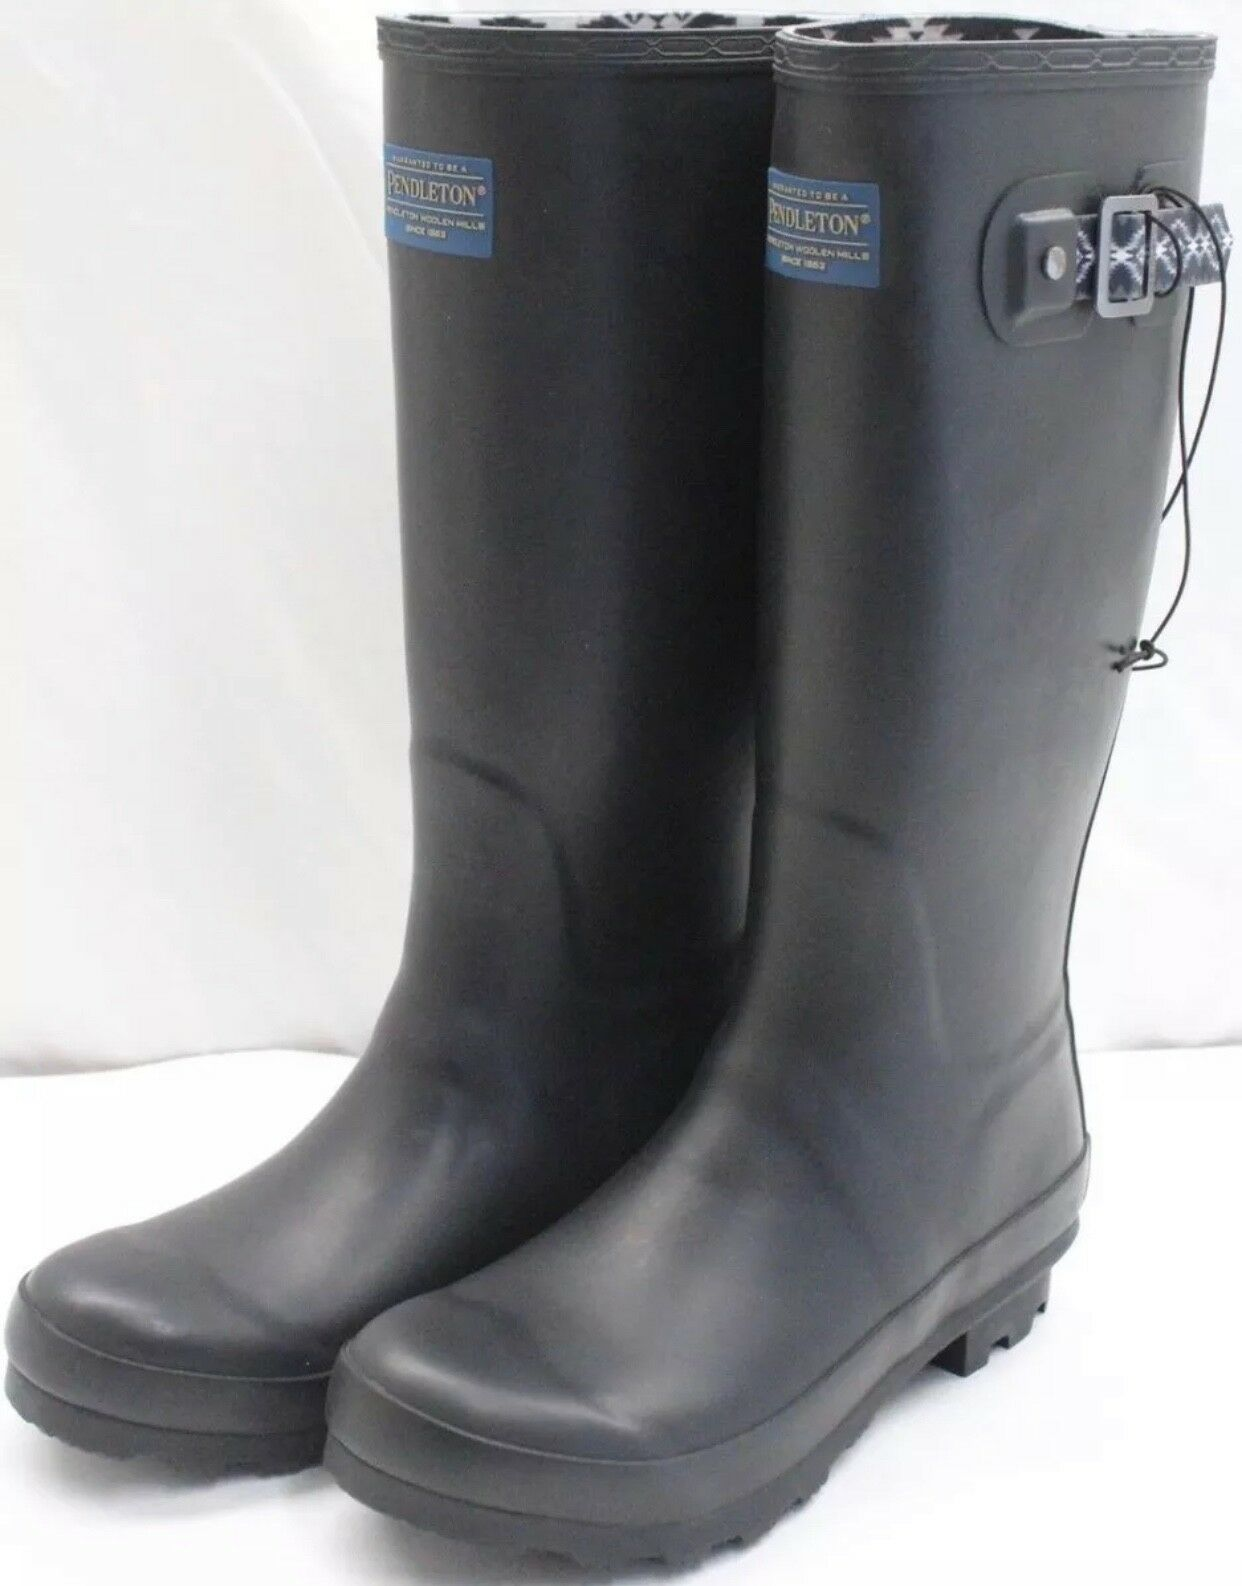 New   Pendleton Ladies Classic Rubber Boot Black Size 7 (D064)